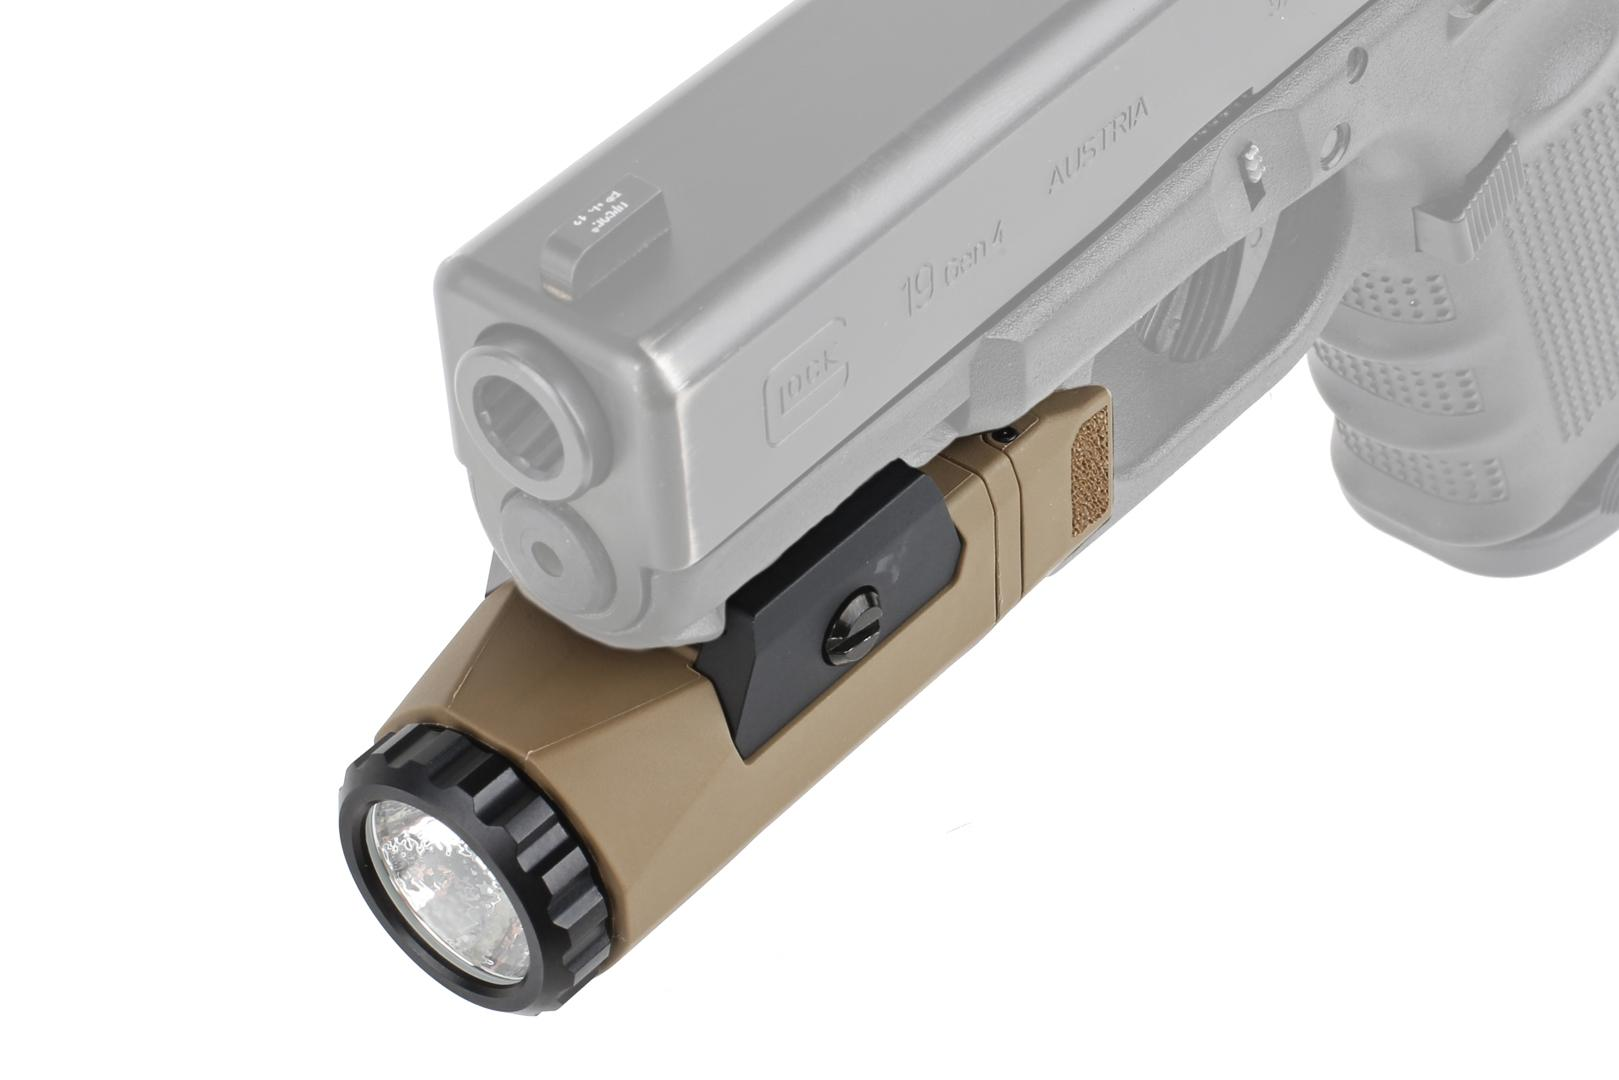 This Inforce light is attached to a glock 19 handgunThis Inforce light is attached to a glock 19 handgun and features ambidextrous textured activation switches